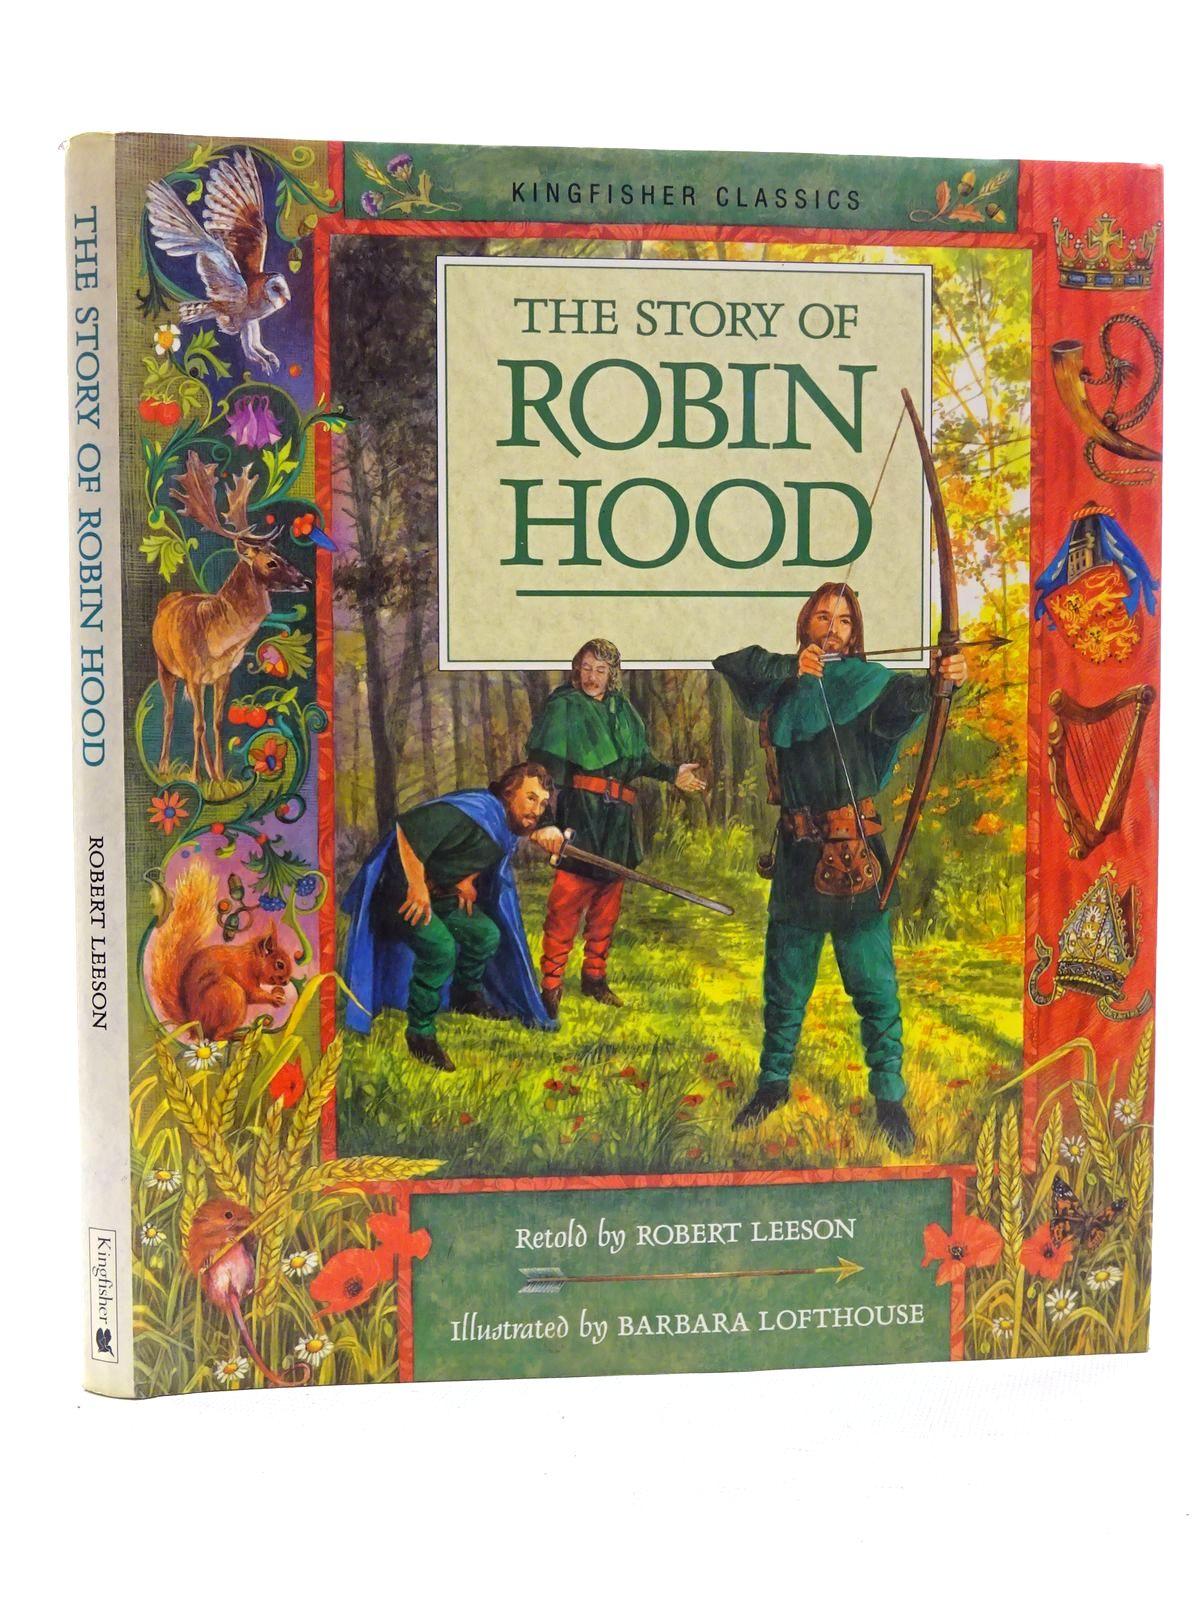 Photo of THE STORY OF ROBIN HOOD written by Leeson, Robert illustrated by Lofthouse, Barbara published by Kingfisher (STOCK CODE: 2125226)  for sale by Stella & Rose's Books